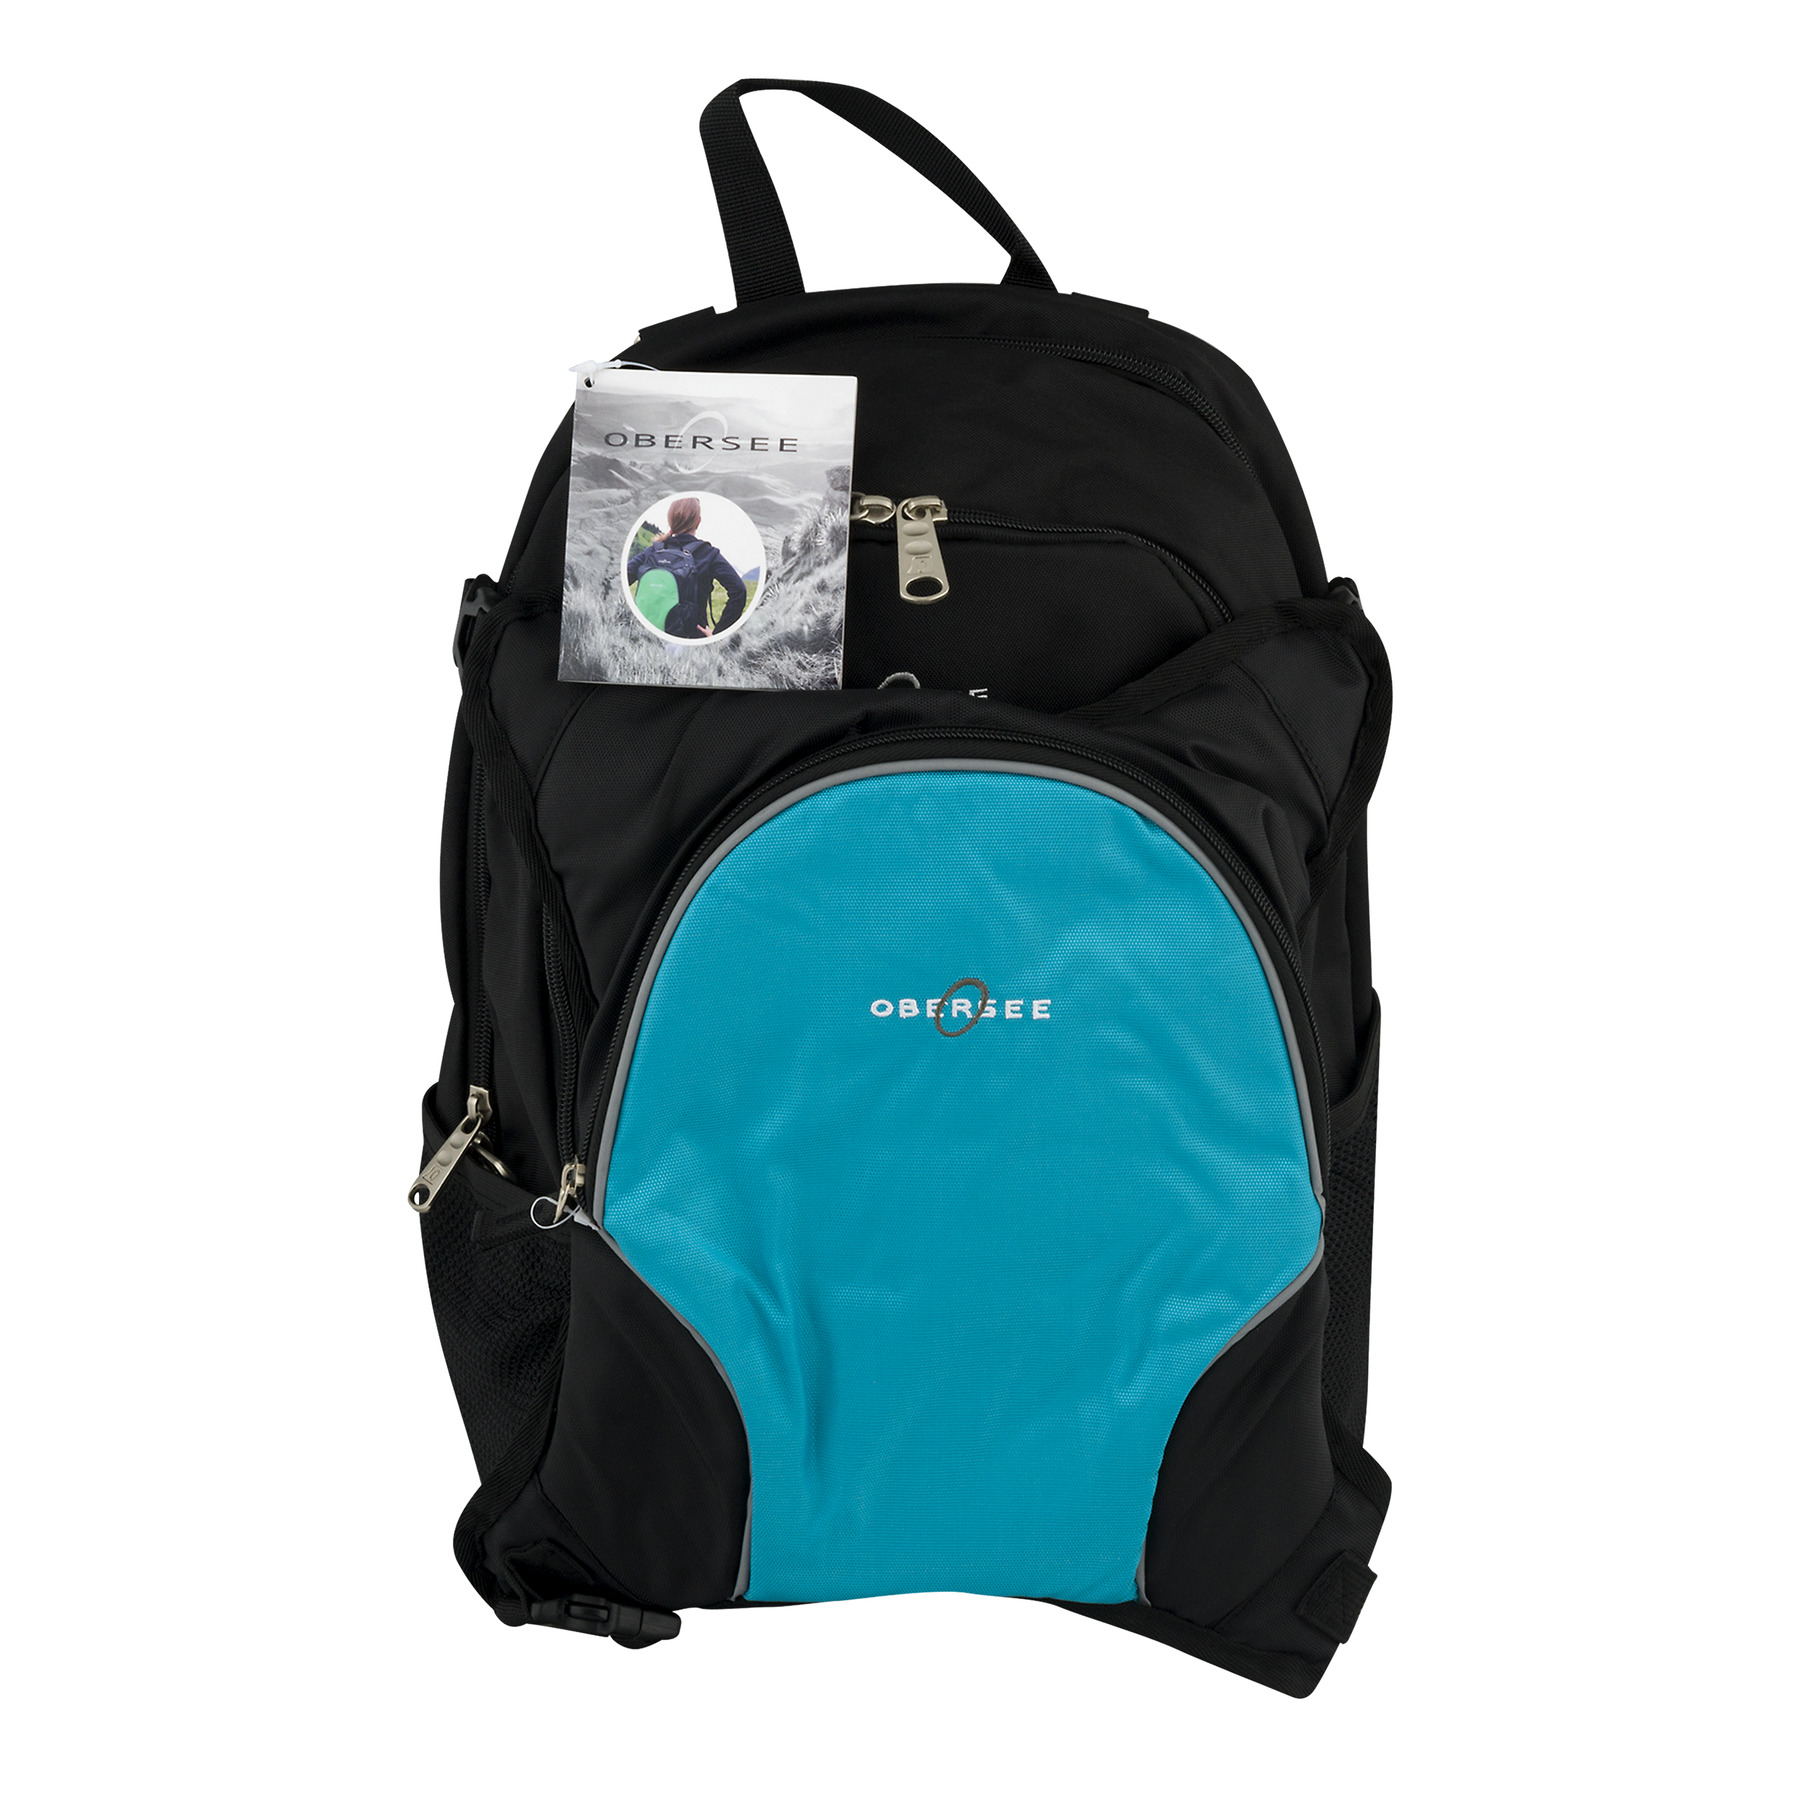 Obersee Rio Diaper Bag Backpack with Detachable Cooler, Black/Turquoise